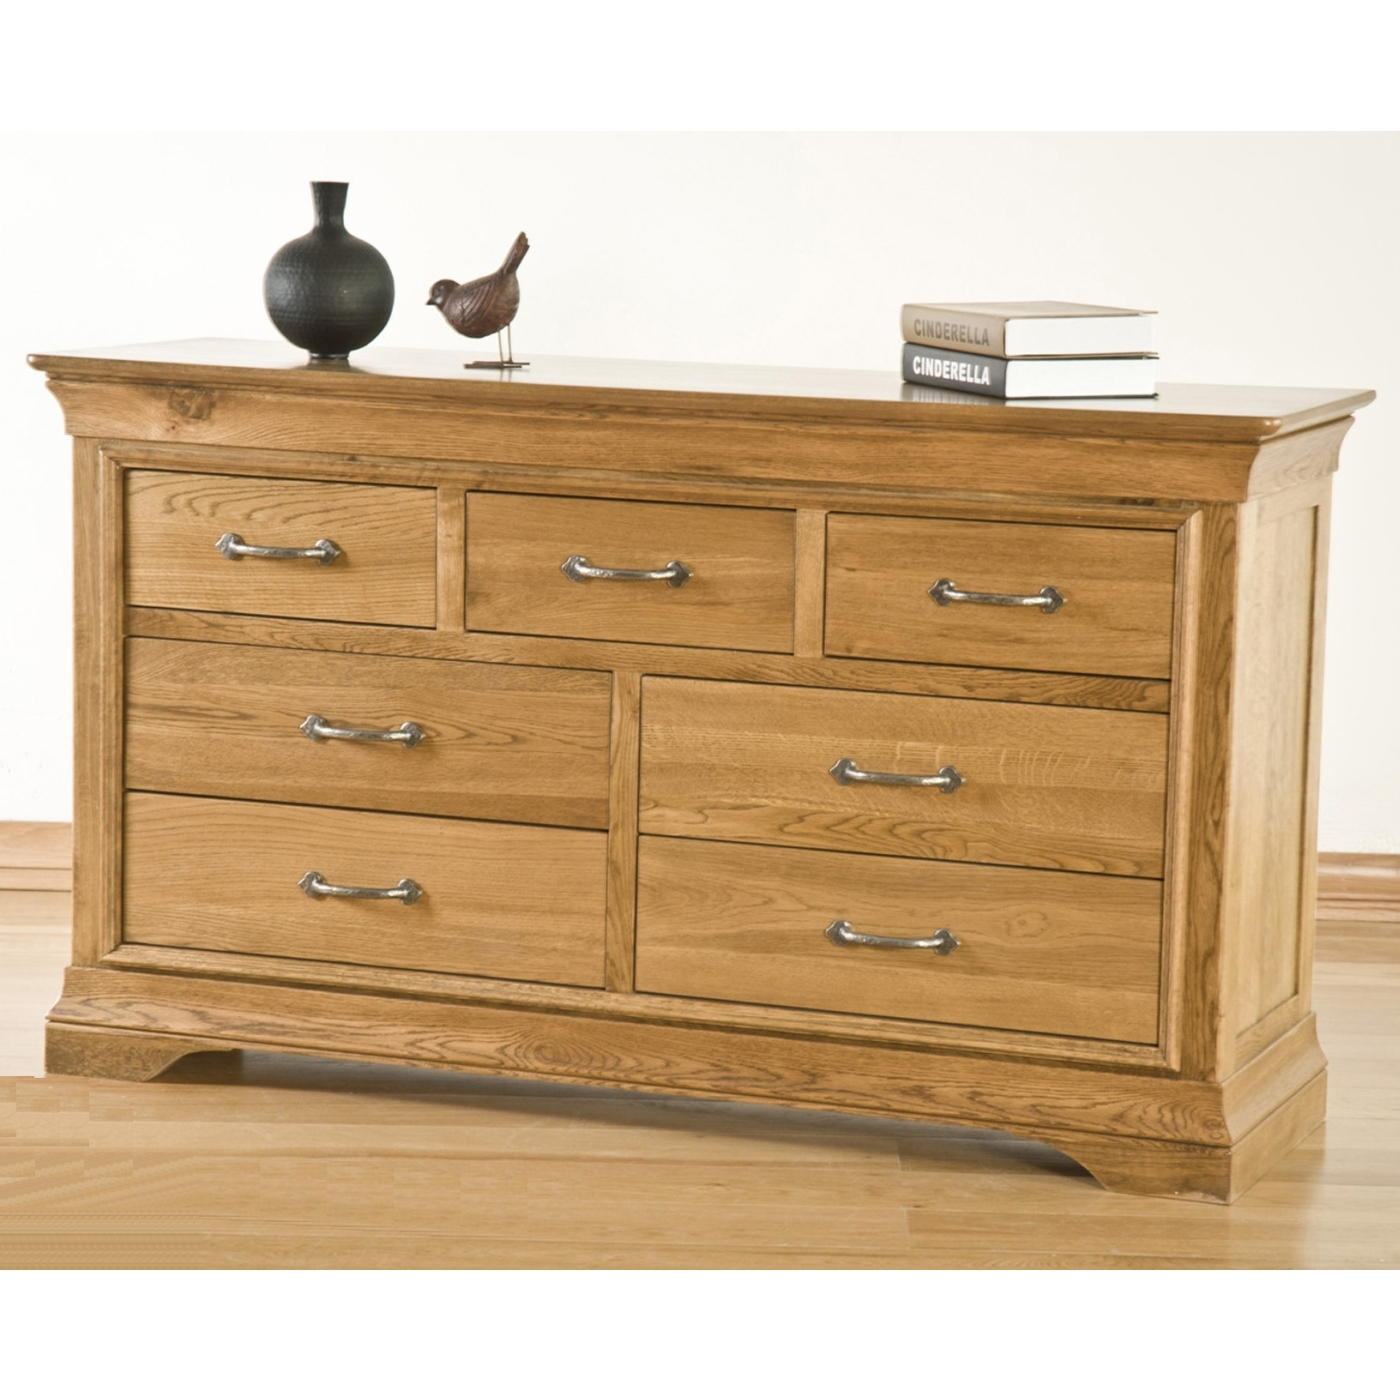 Toulon Solid Oak Furniture 3 Over 4 Bedroom Chest Of Drawers Ebay